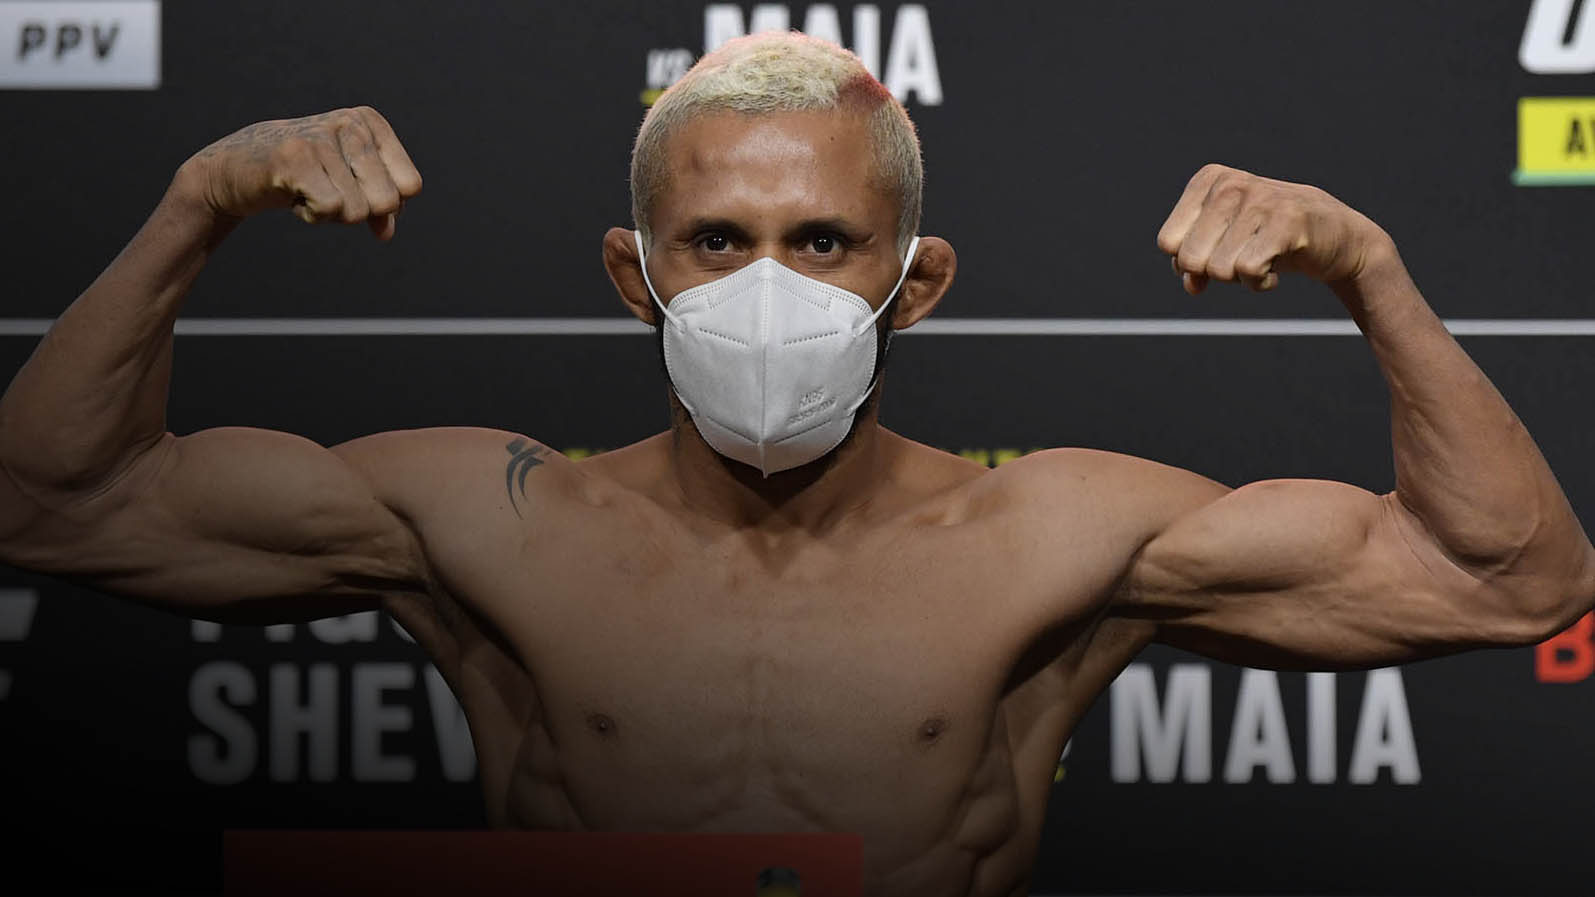 Deiveson Figueiredo of Brazil poses on the scale during the UFC 255 weigh-in at UFC APEX on November 20, 2020 in Las Vegas, Nevada. (Photo by Jeff Bottari/Zuffa LLC)